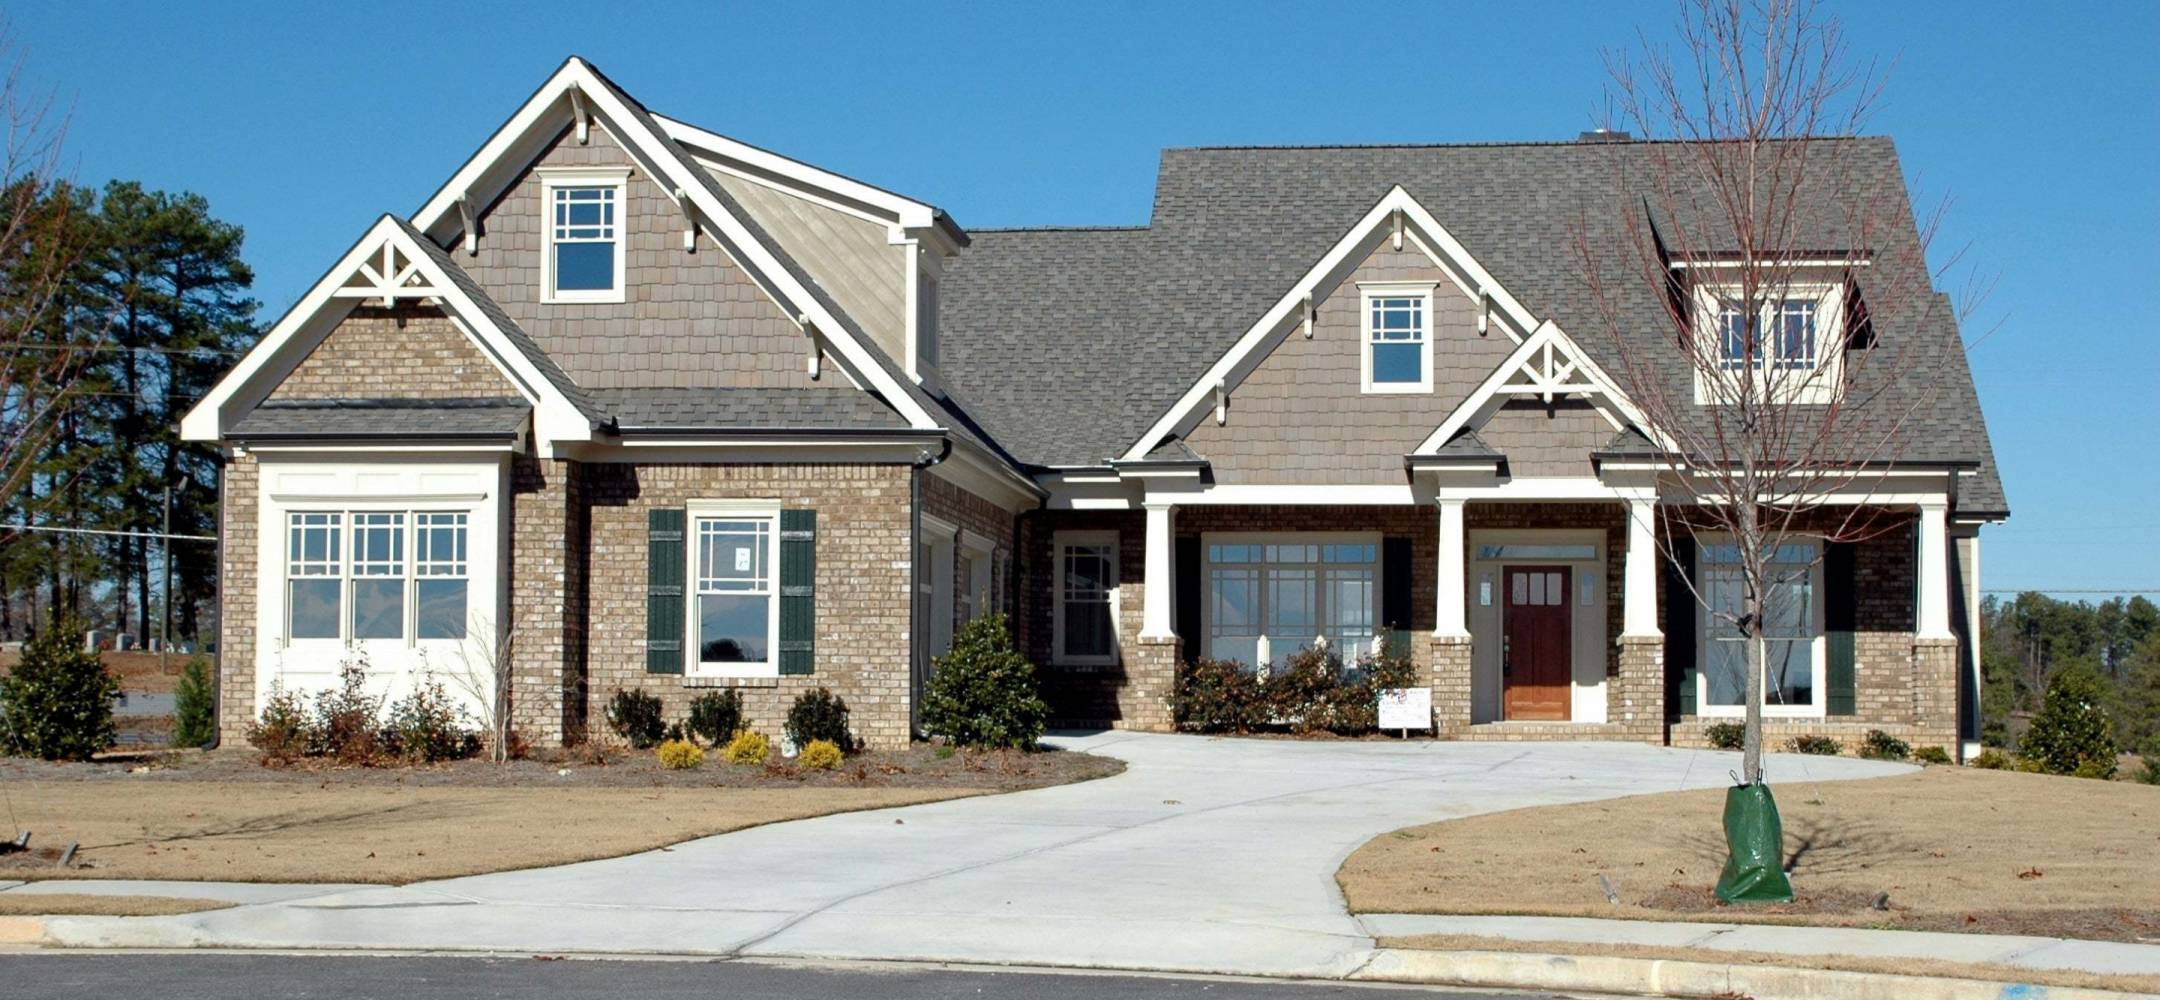 Should You Build or Buy Your House?